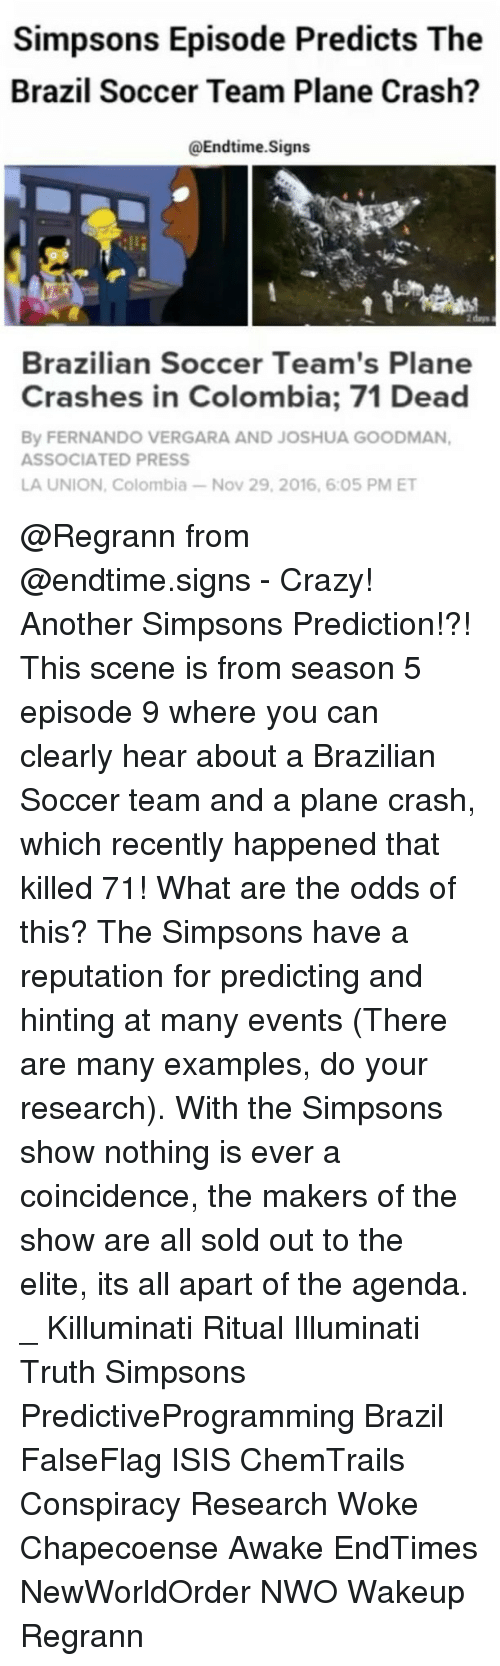 chemtrails: Simpsons Episode Predicts The  Brazil Soccer Team Plane Crash?  Enditime.Signs  Brazilian Soccer Team's Plane  Crashes in Colombia; 71 Dead  By FERNANDO VERGARA AND JOSHUA GOODMAN,  ASSOCIATED PRESS  LA UNION, Colombia-Nov 29, 2016, 6:05 PM ET @Regrann from @endtime.signs - Crazy! Another Simpsons Prediction!?! This scene is from season 5 episode 9 where you can clearly hear about a Brazilian Soccer team and a plane crash, which recently happened that killed 71! What are the odds of this? The Simpsons have a reputation for predicting and hinting at many events (There are many examples, do your research). With the Simpsons show nothing is ever a coincidence, the makers of the show are all sold out to the elite, its all apart of the agenda. _ Killuminati Ritual Illuminati Truth Simpsons PredictiveProgramming Brazil FalseFlag ISIS ChemTrails Conspiracy Research Woke Chapecoense Awake EndTimes NewWorldOrder NWO Wakeup Regrann